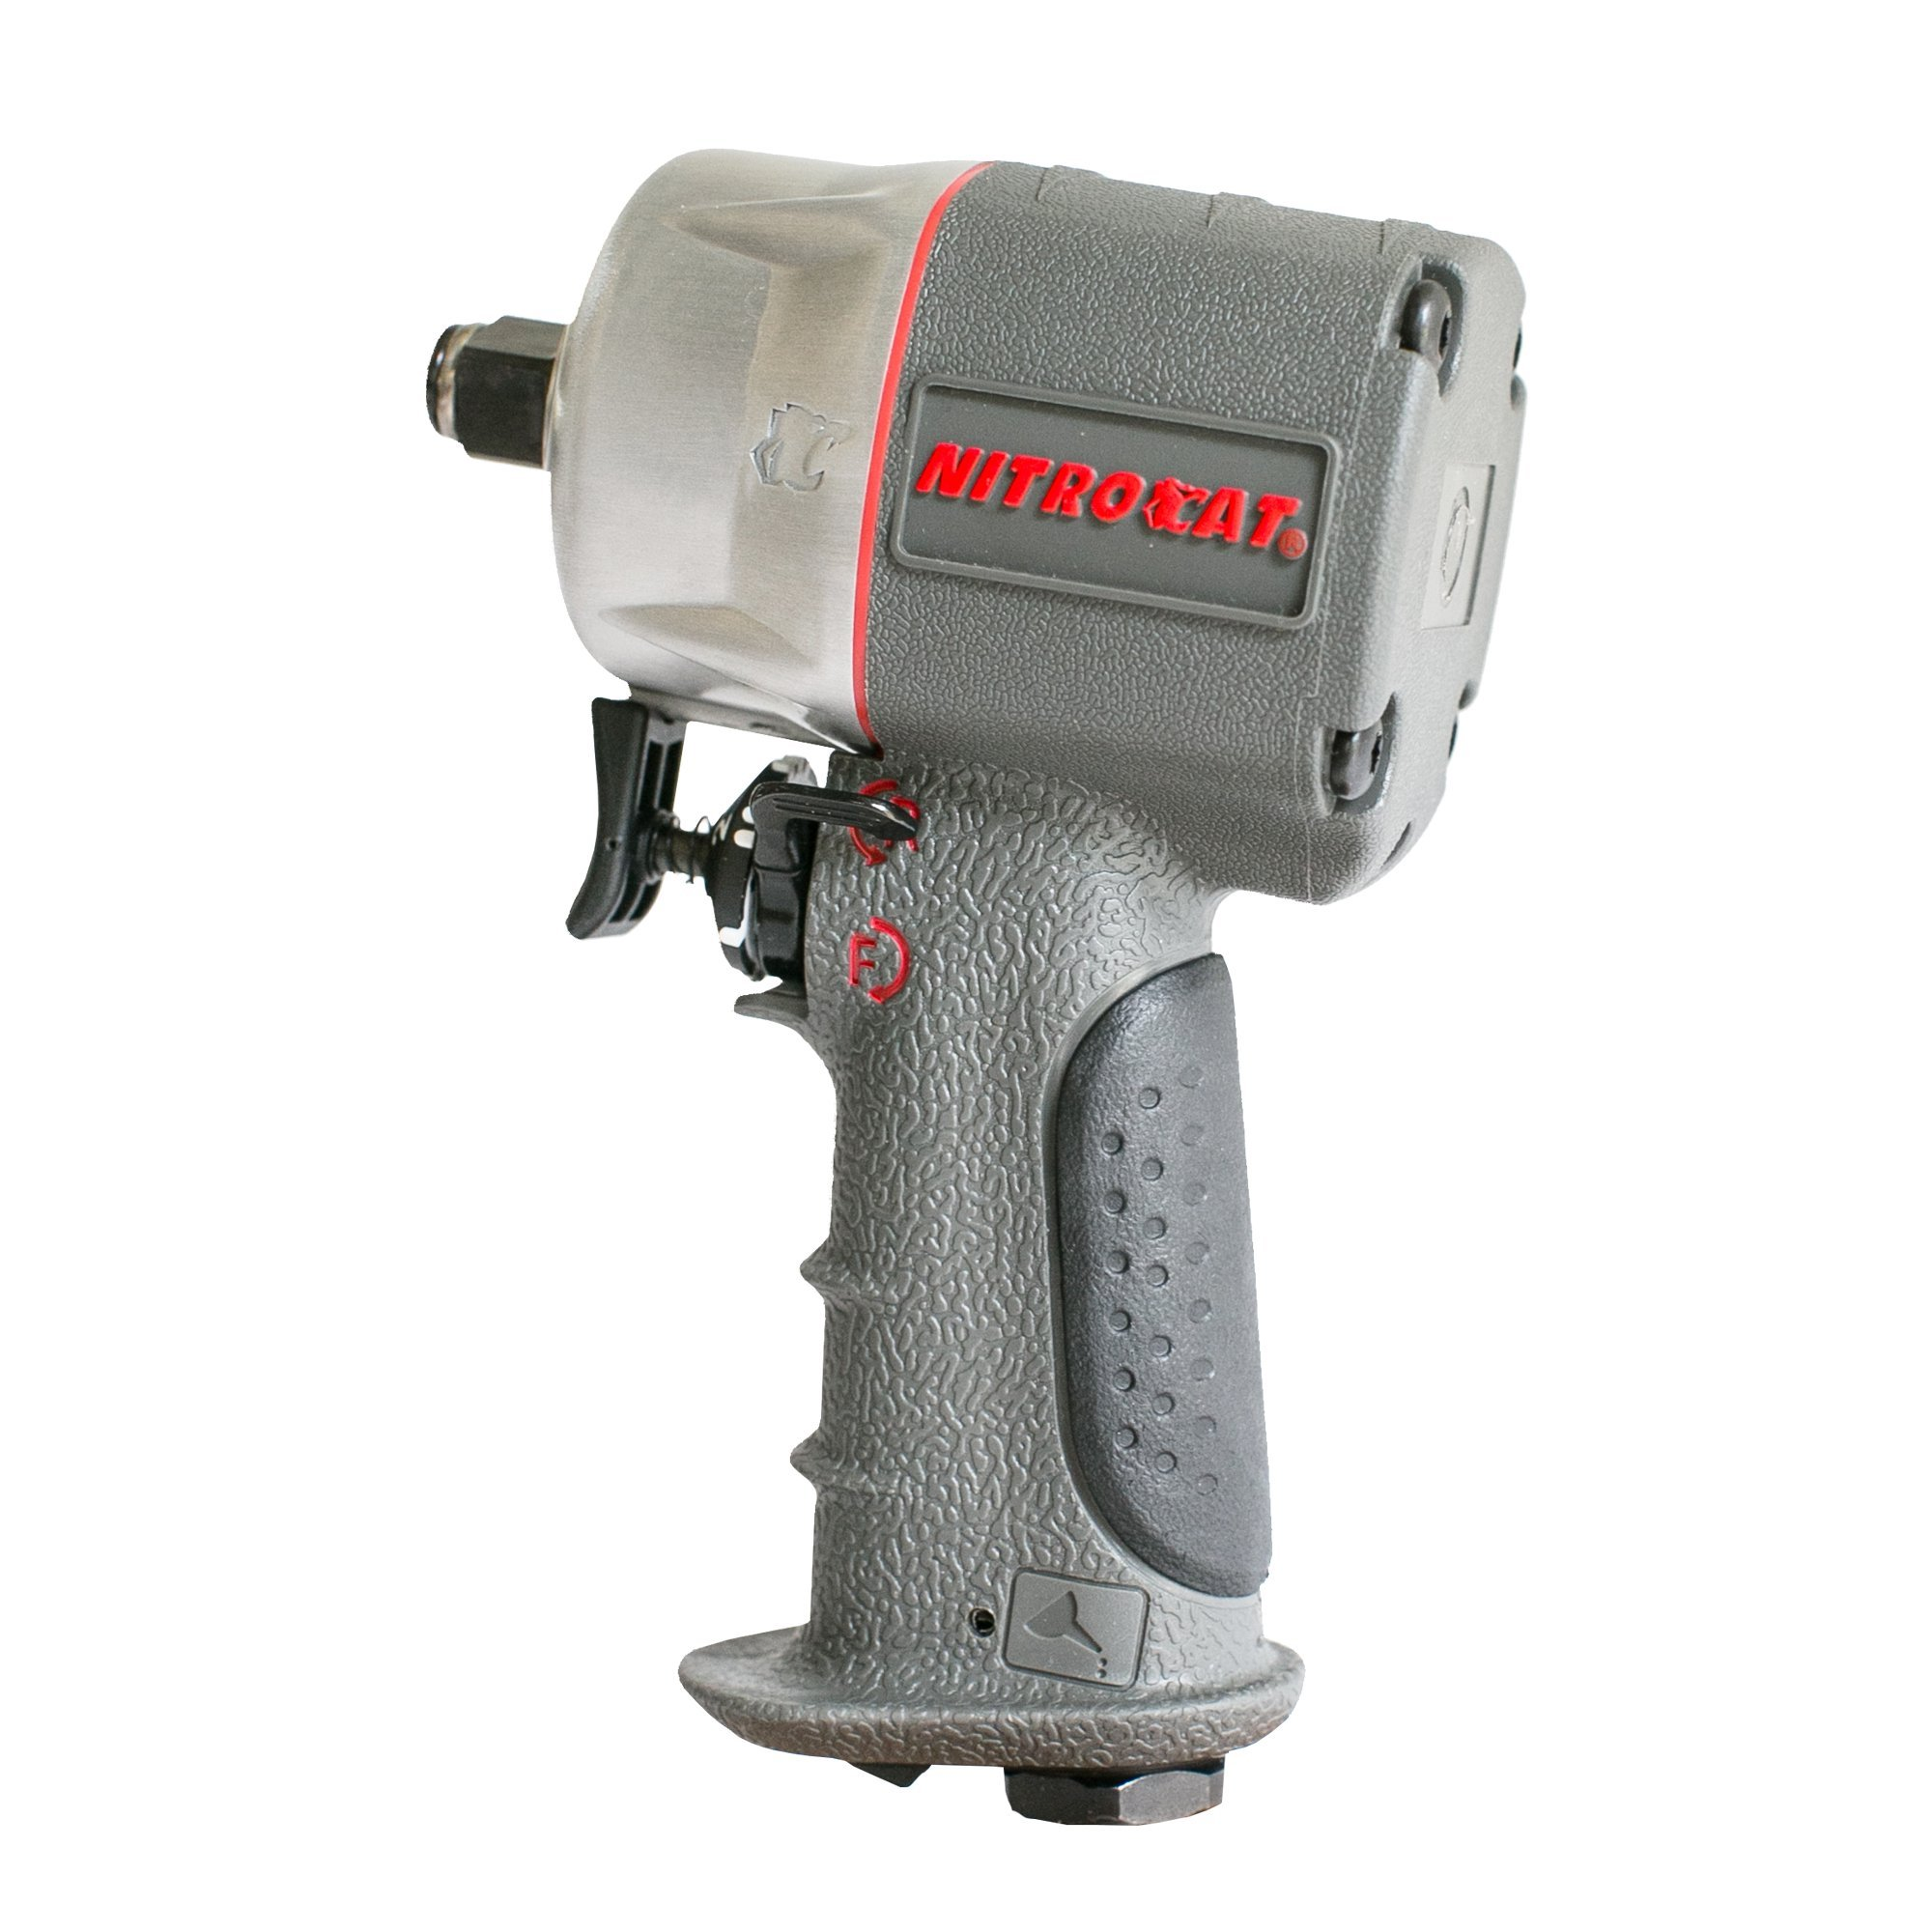 AIRCAT 1056-XL Kevlar Composite Compact Impact Wrench, 1/2'', Silver & Grey by AirCat